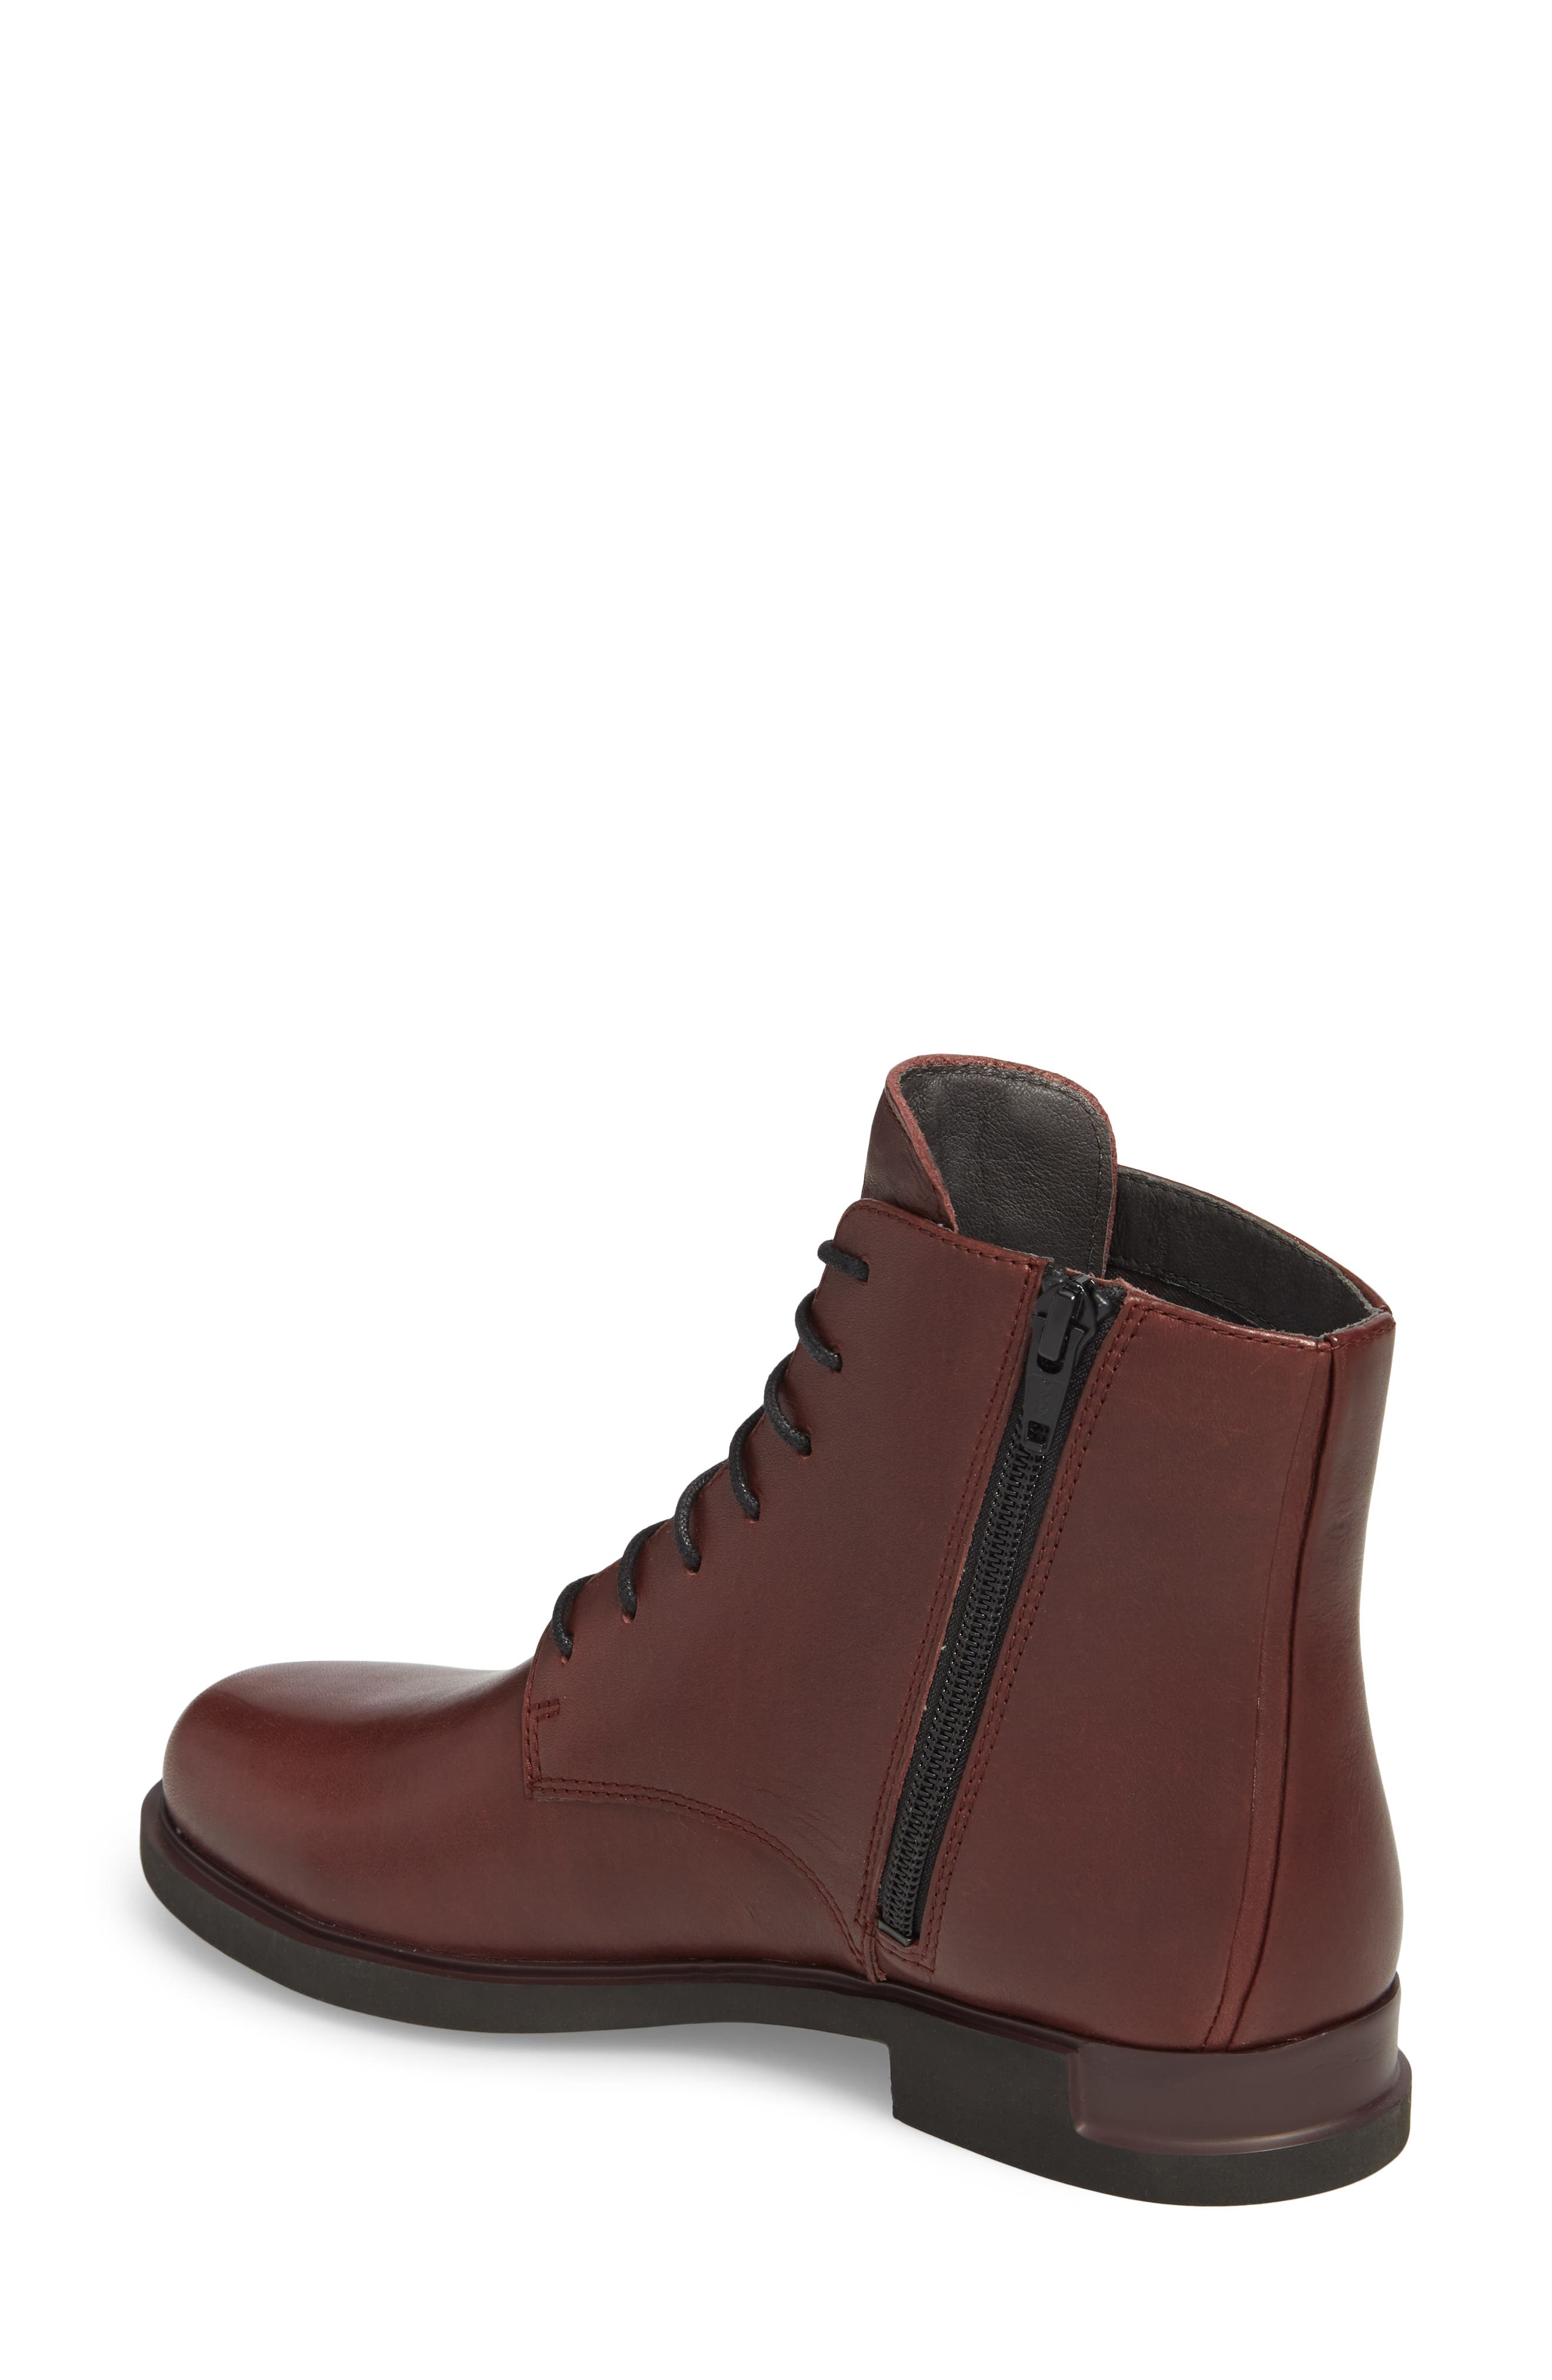 Helix Lace-Up Bootie,                             Alternate thumbnail 2, color,                             BURGUNDY LEATHER